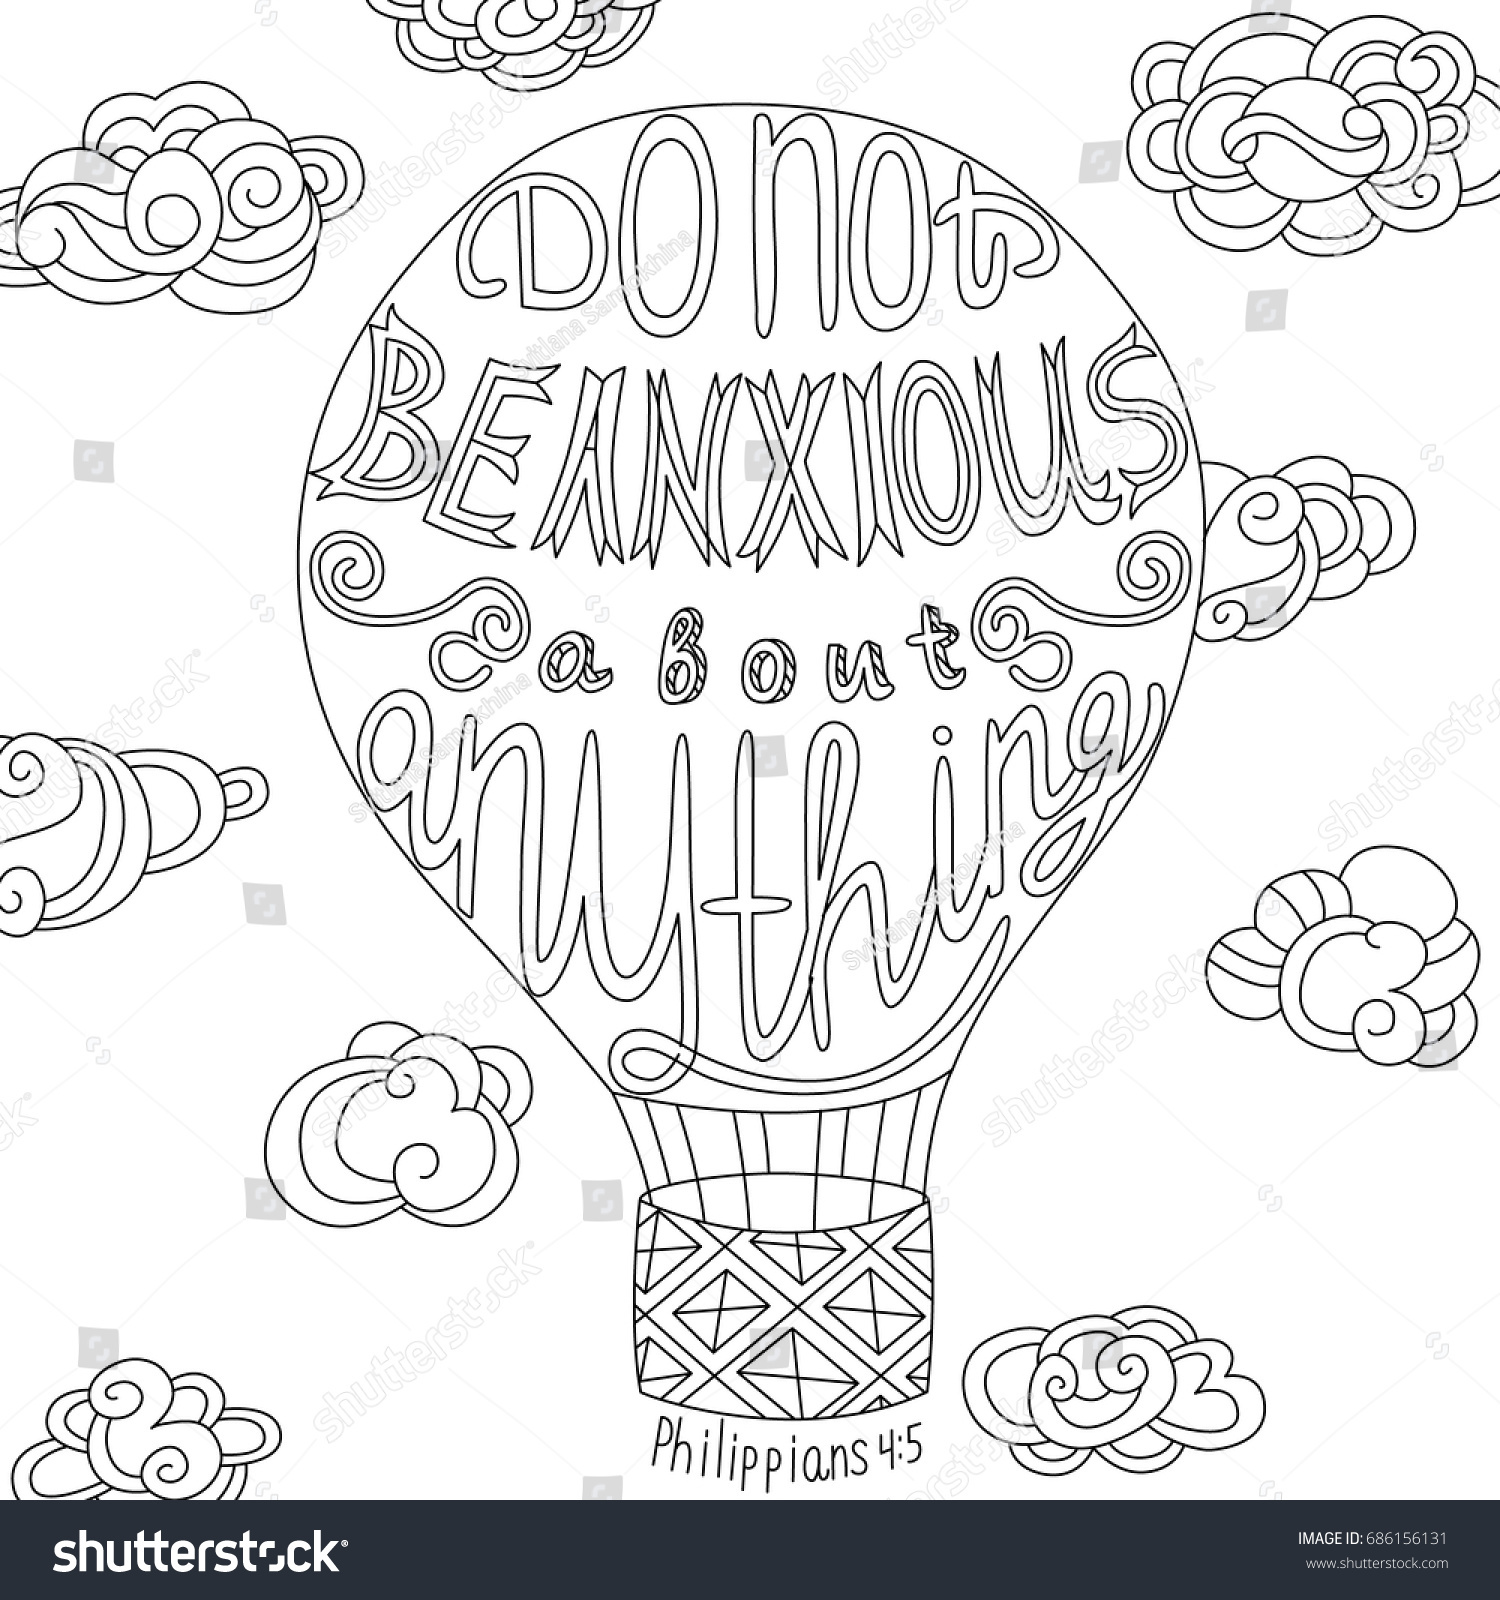 Coloring Page Motivational Quote Coloring Adult Stock